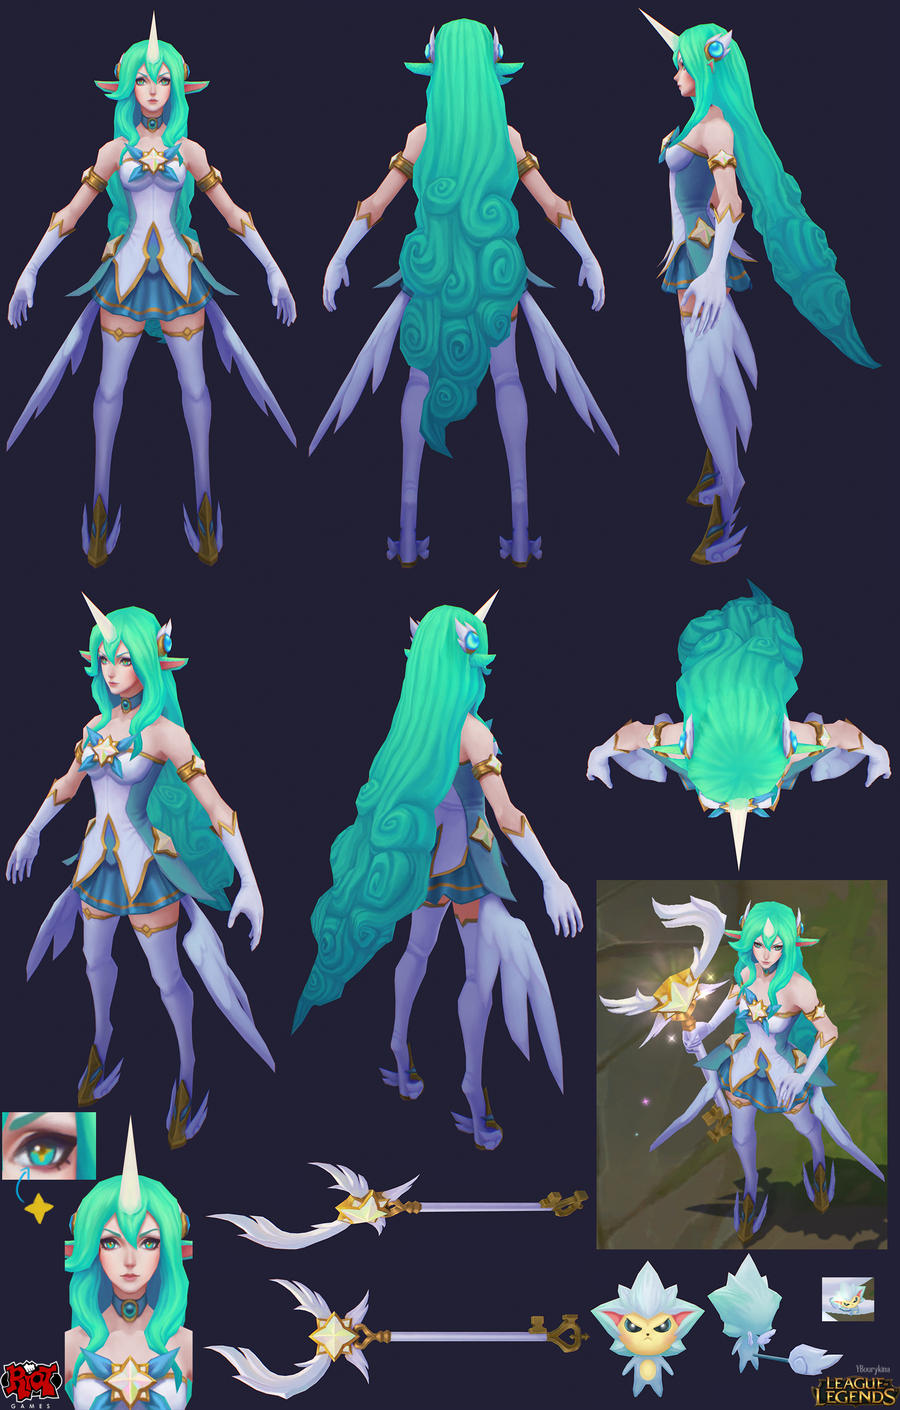 Star guardian soraka cosplay